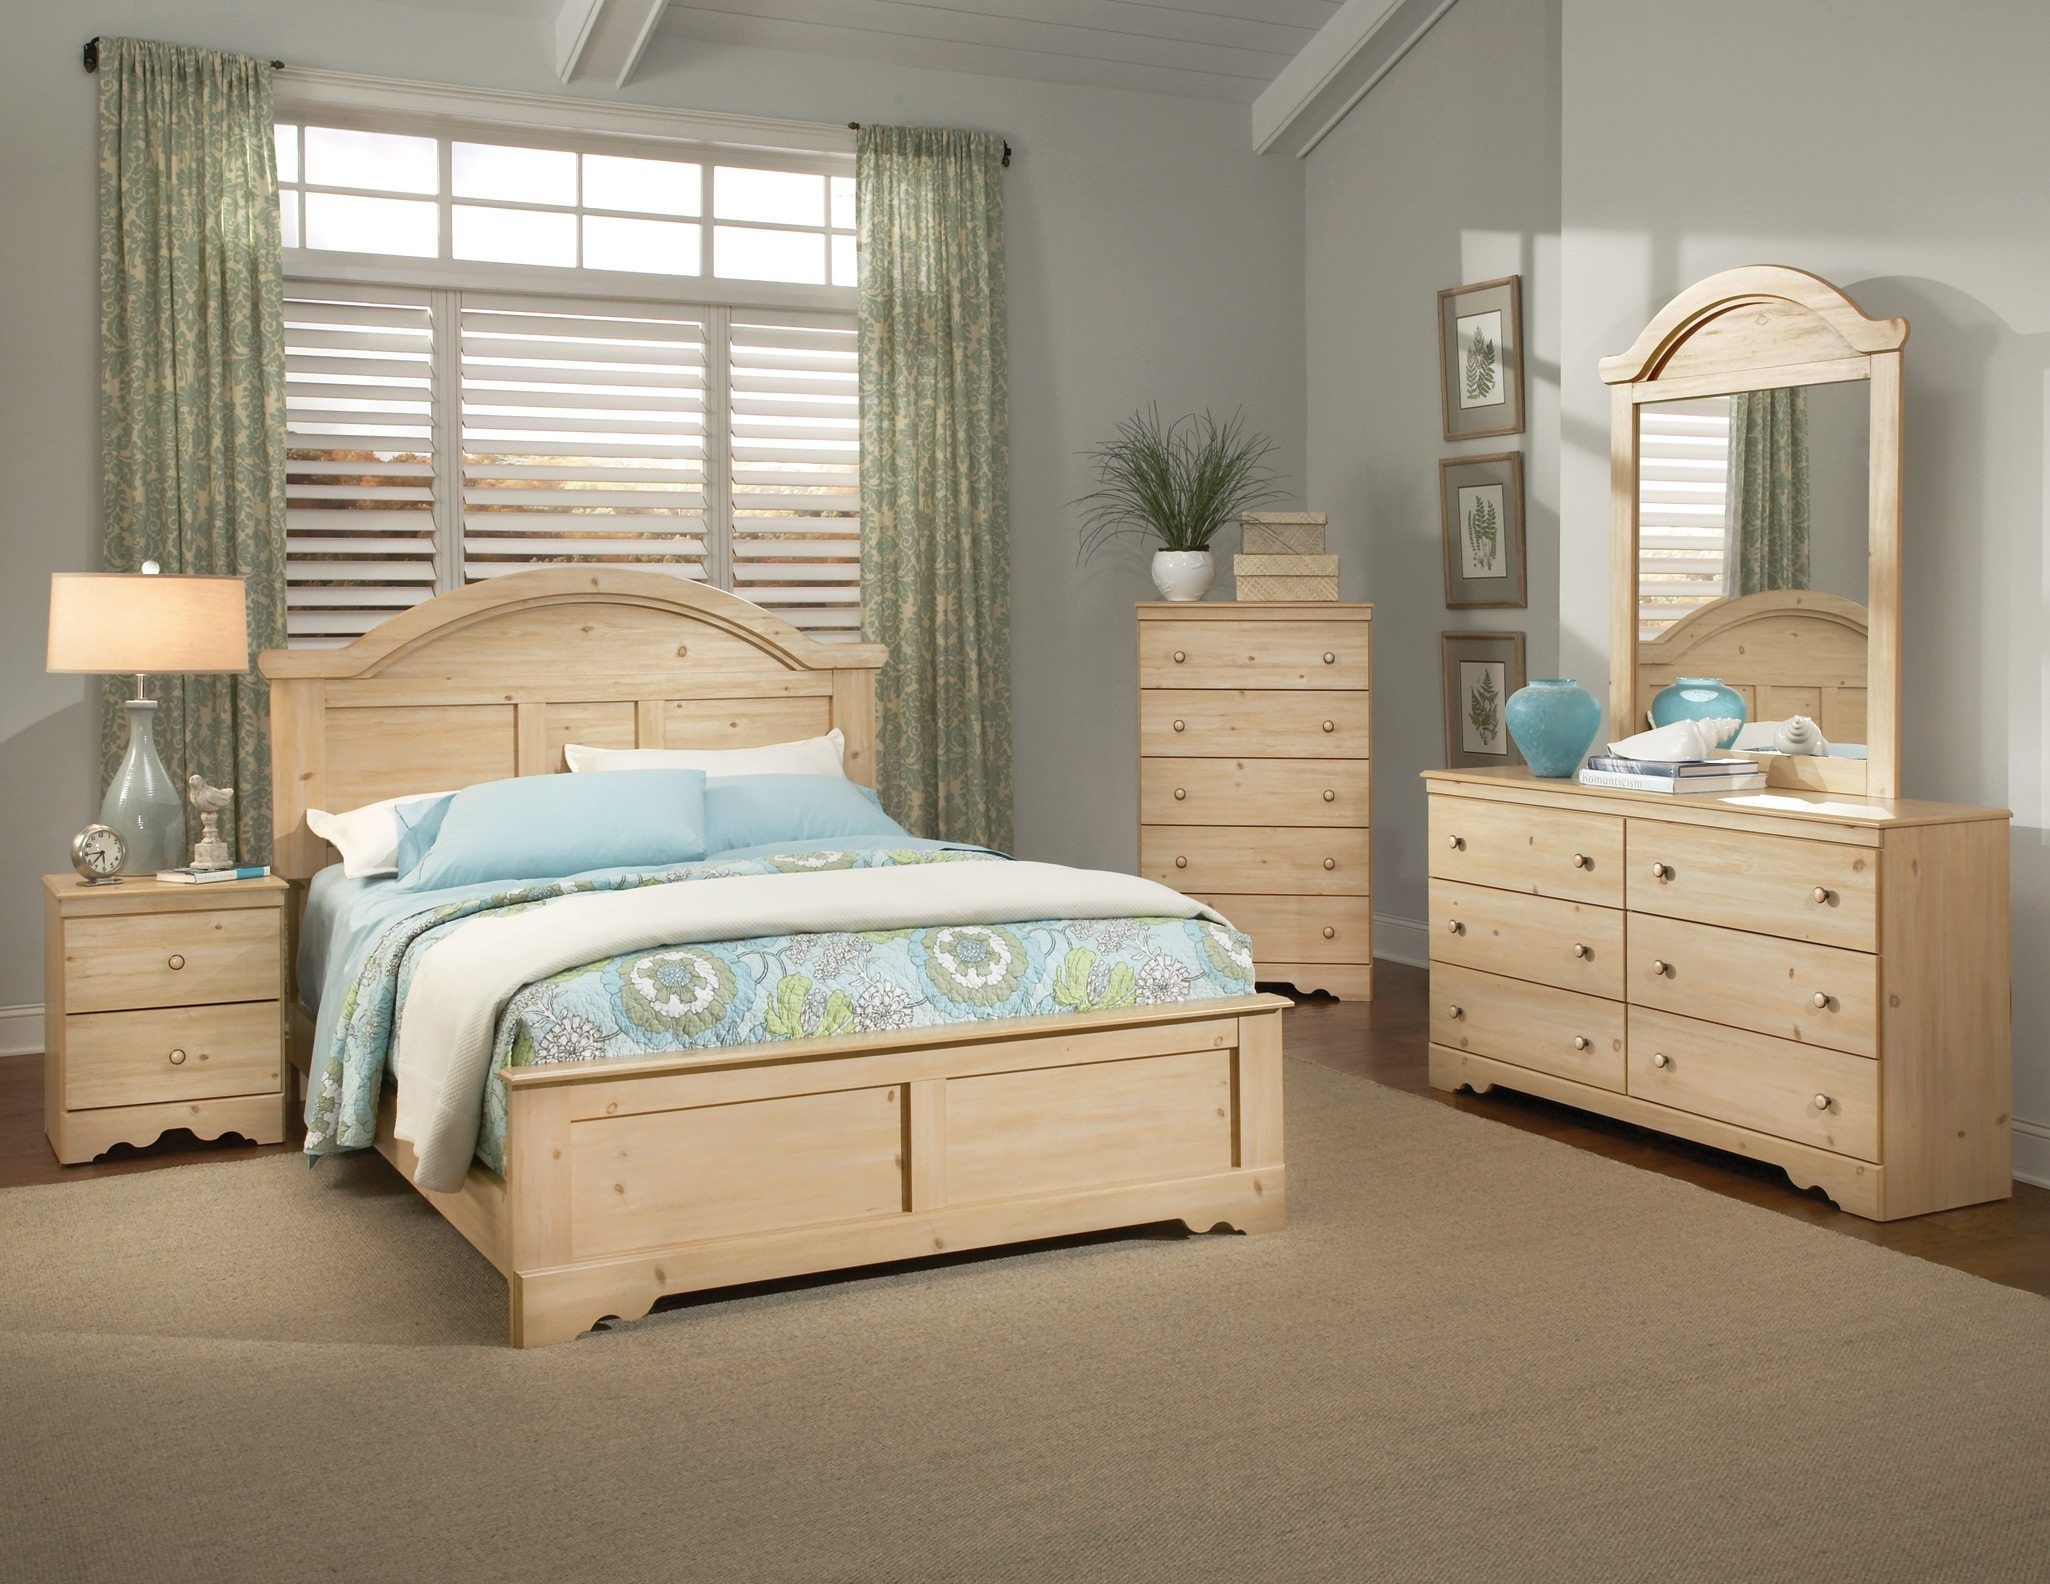 Solid Pine Bedroom Furniture With Grey Paint Bedroom Wall And Green Curtain Also Cream Bedroom Furniture Wood Bedroom Furniture Sets Oak Bedroom Furniture Sets